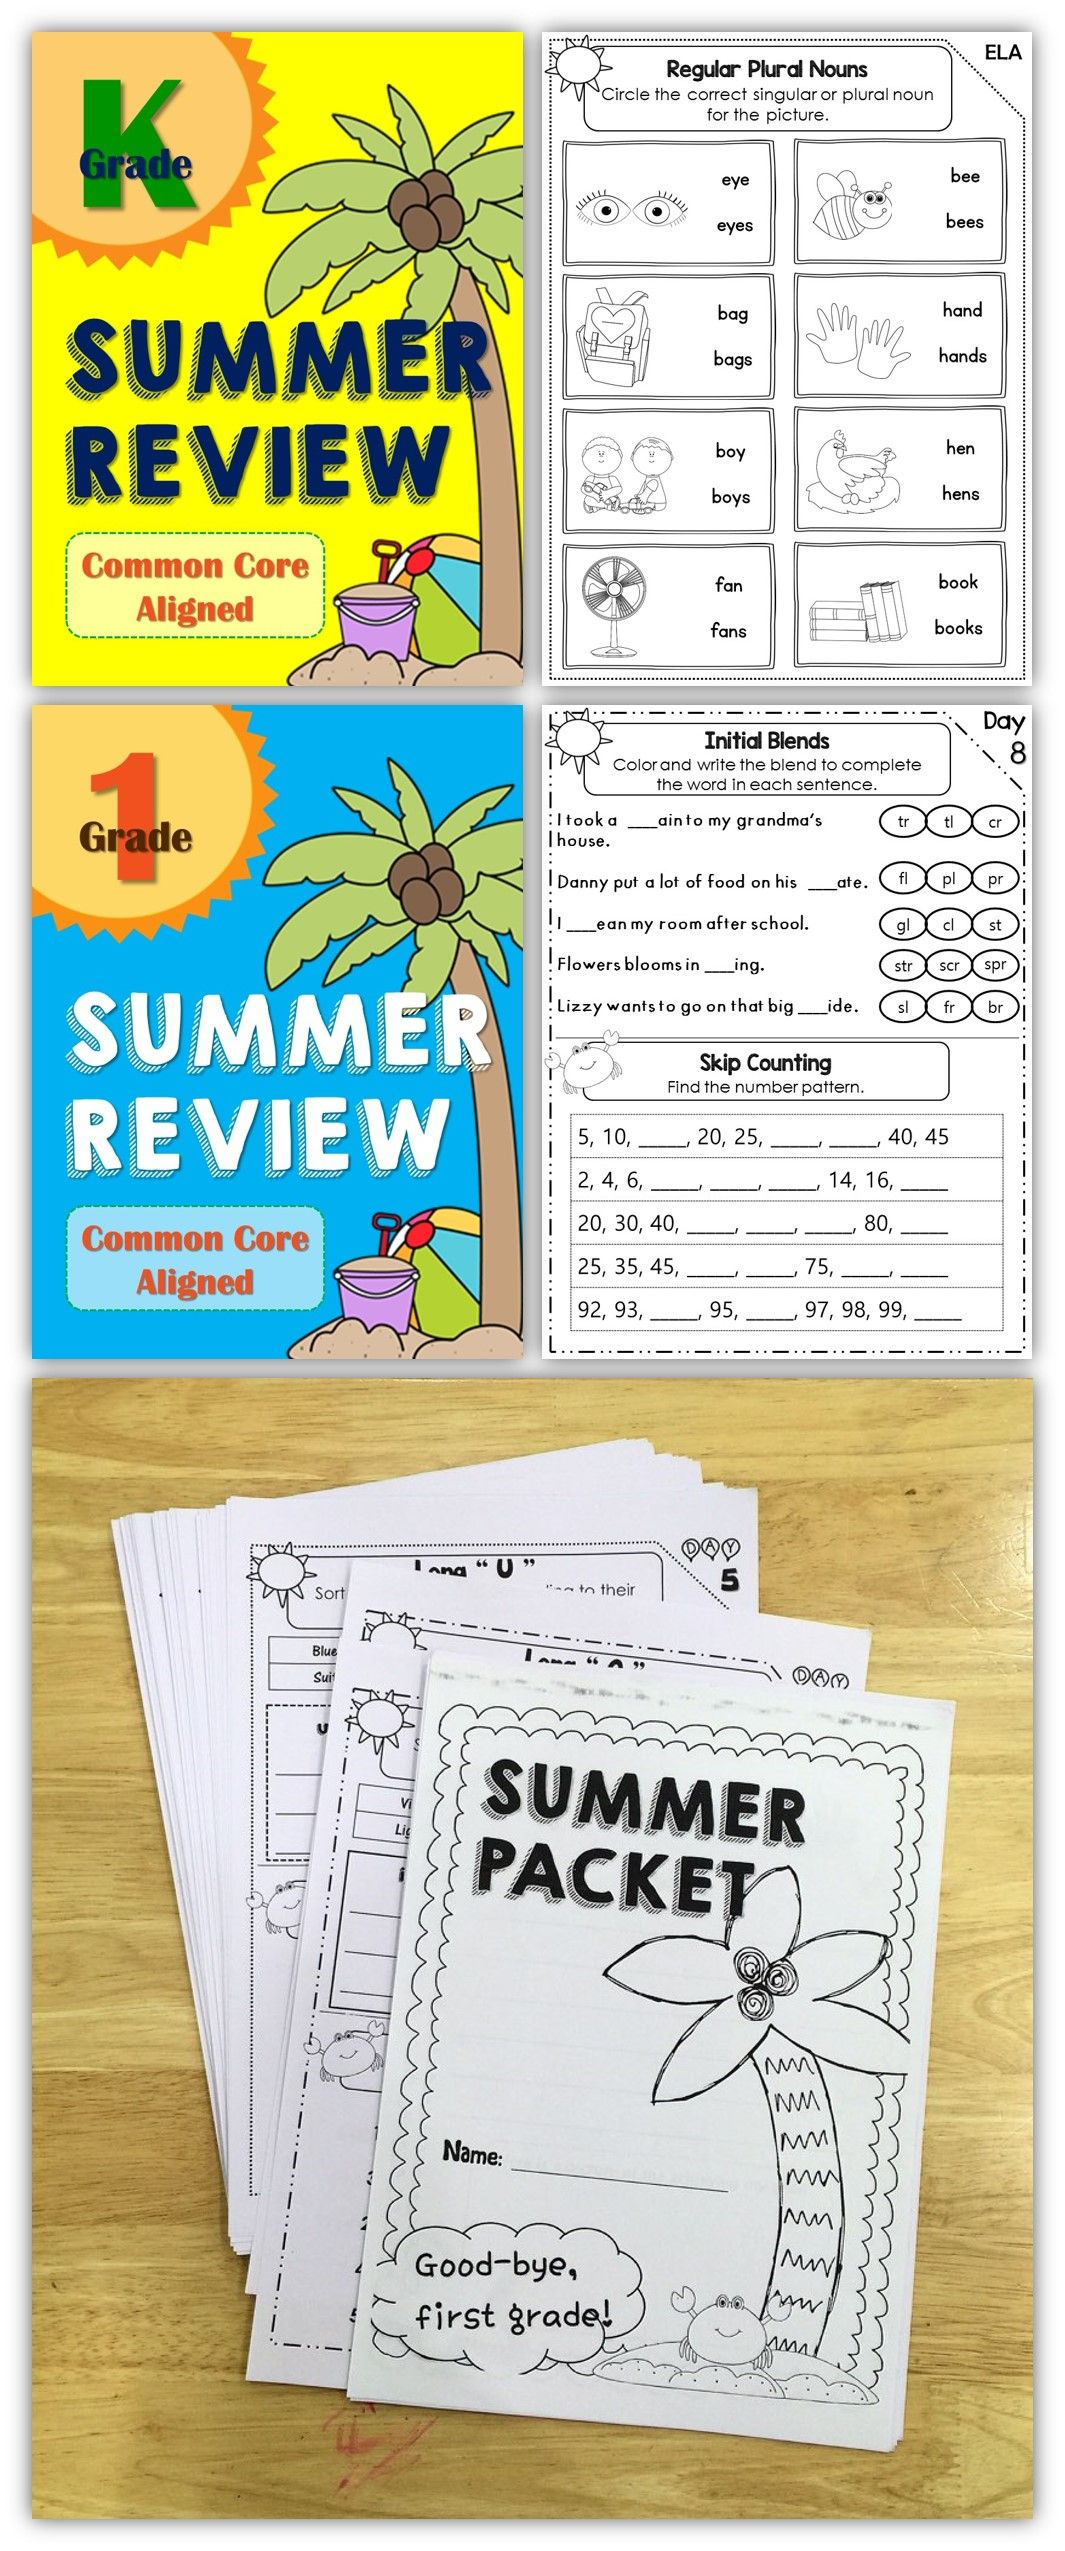 Summer Review For Kindergarten And First Grade Common